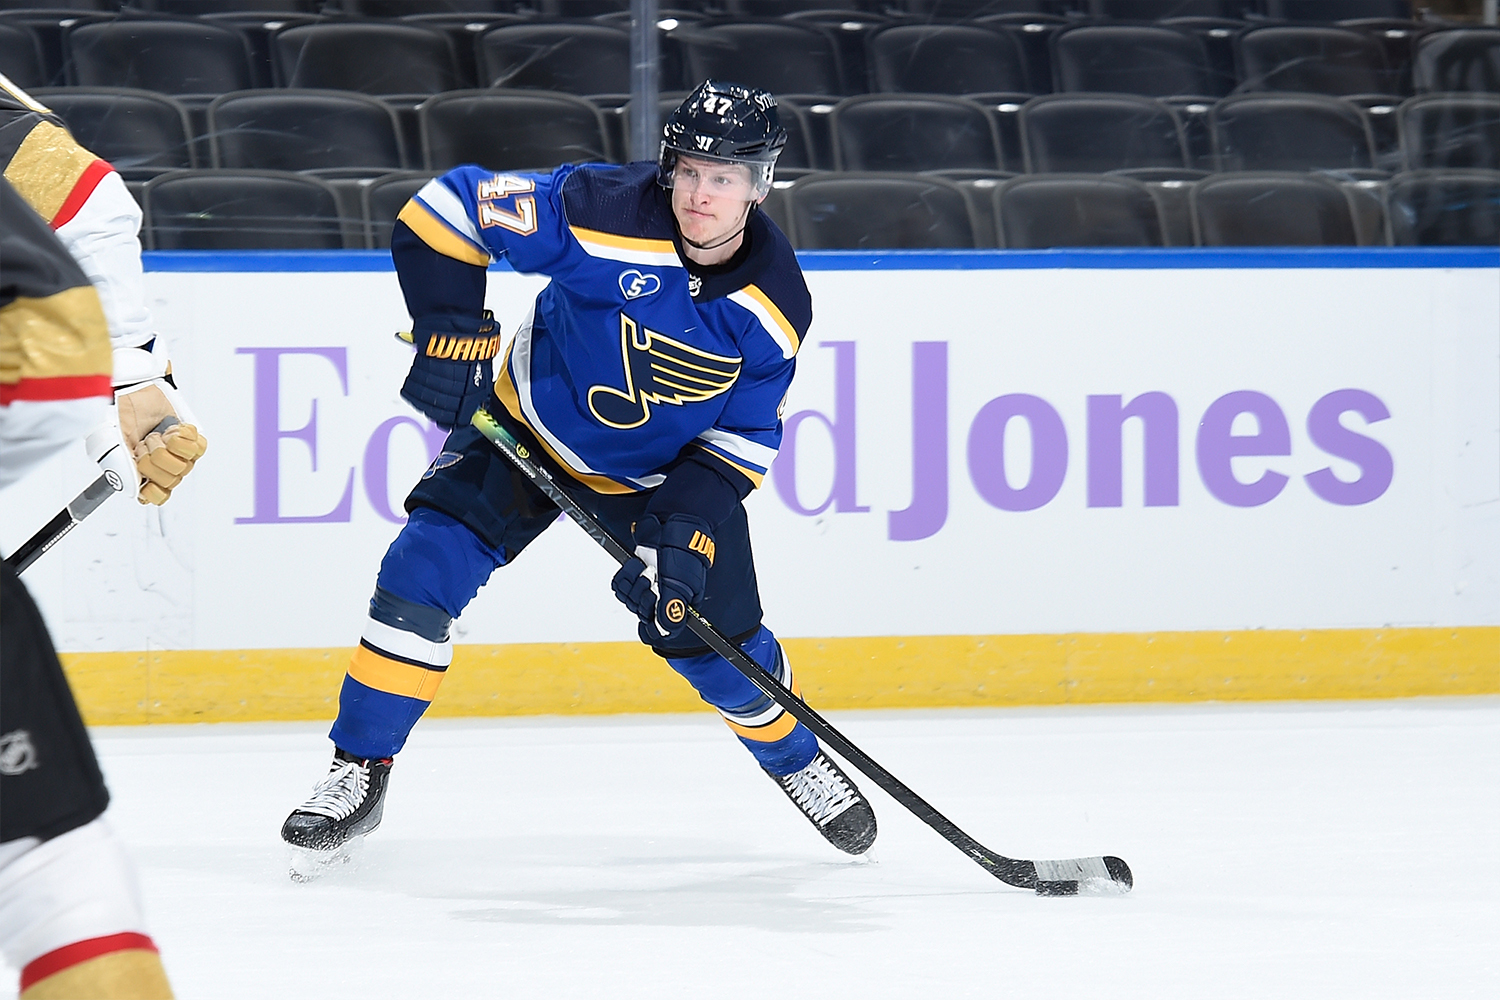 Torey Krug #47 of the St. Louis Blues in action against the Vegas Golden Knights on April 7, 2021